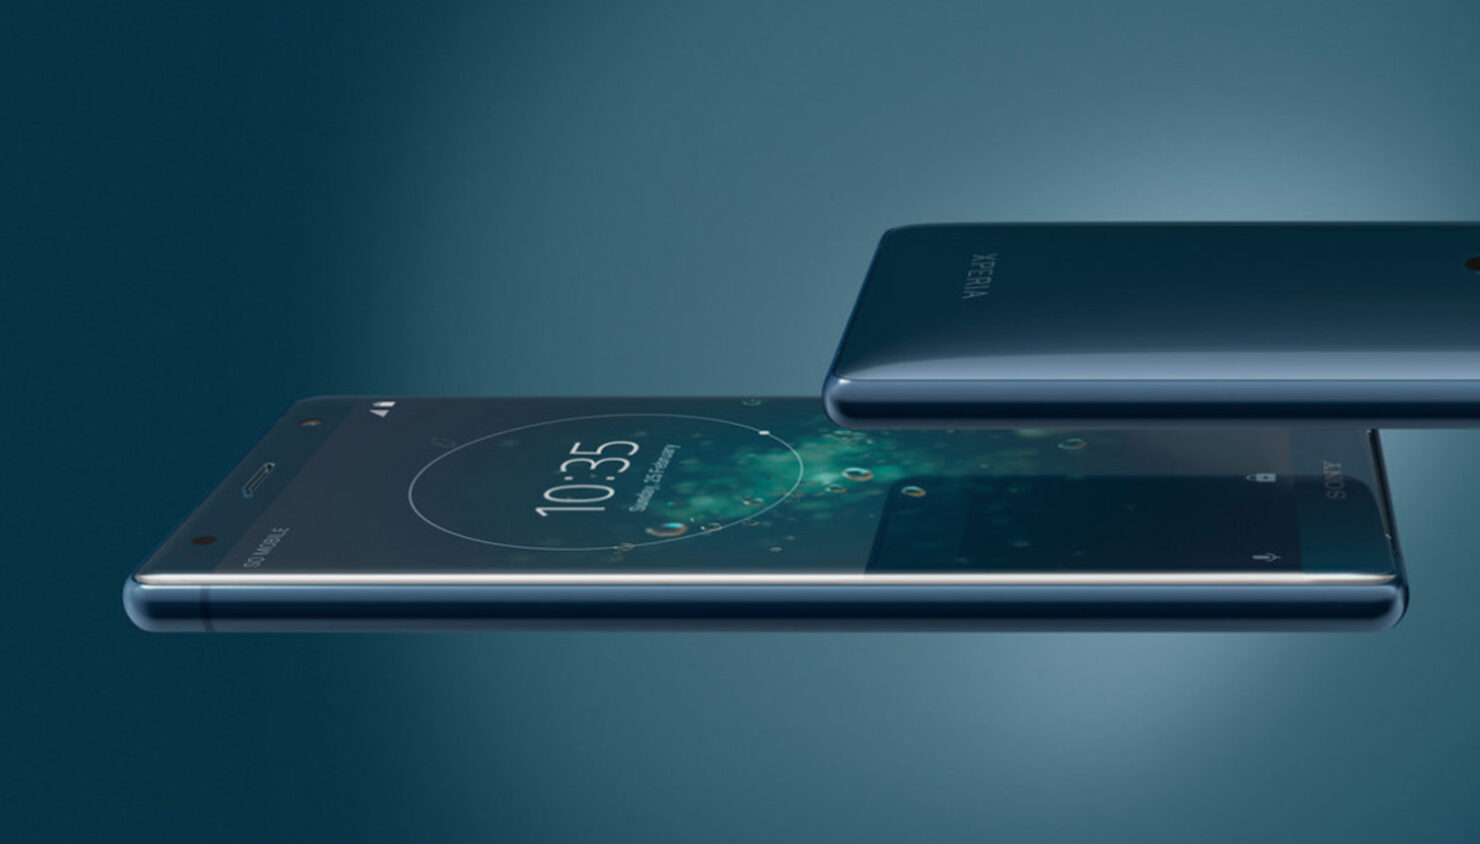 The Sony Xperia XZ2 now costs only $299 and it features a Snapdragon 845 and 4K HDR camera